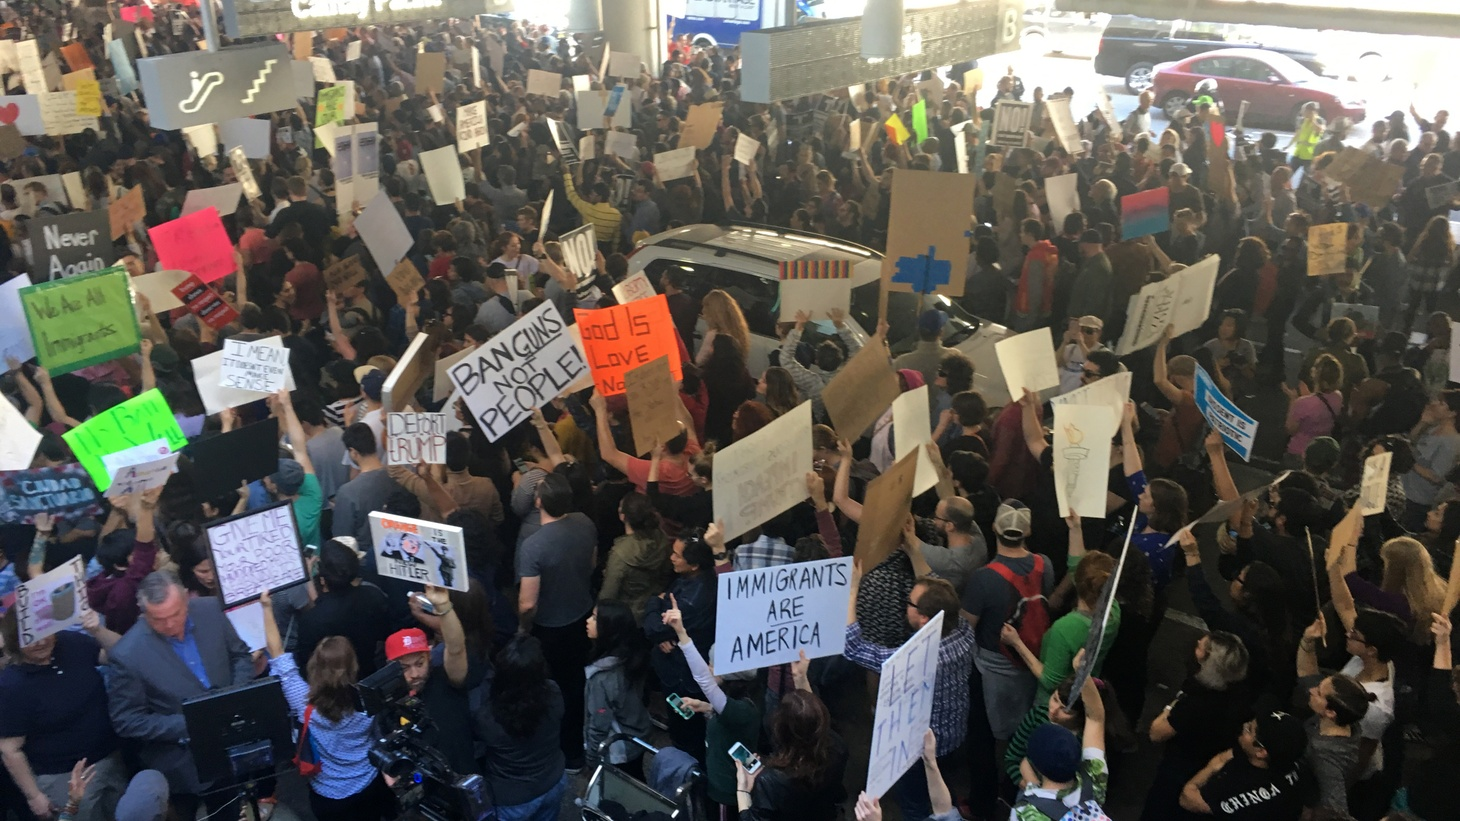 It's been three days since President Trump signed an executive order banning all refugees and restricting travel by immigrants, but the consequences have been fast and far-reaching. Travelers were detained, protests escalated at airports in many US cities, and some top Republicans have criticized the order as too broad. Trump has hit back insisting this is not about religion, just terrorism. Barbara Bogaev guest hosts.